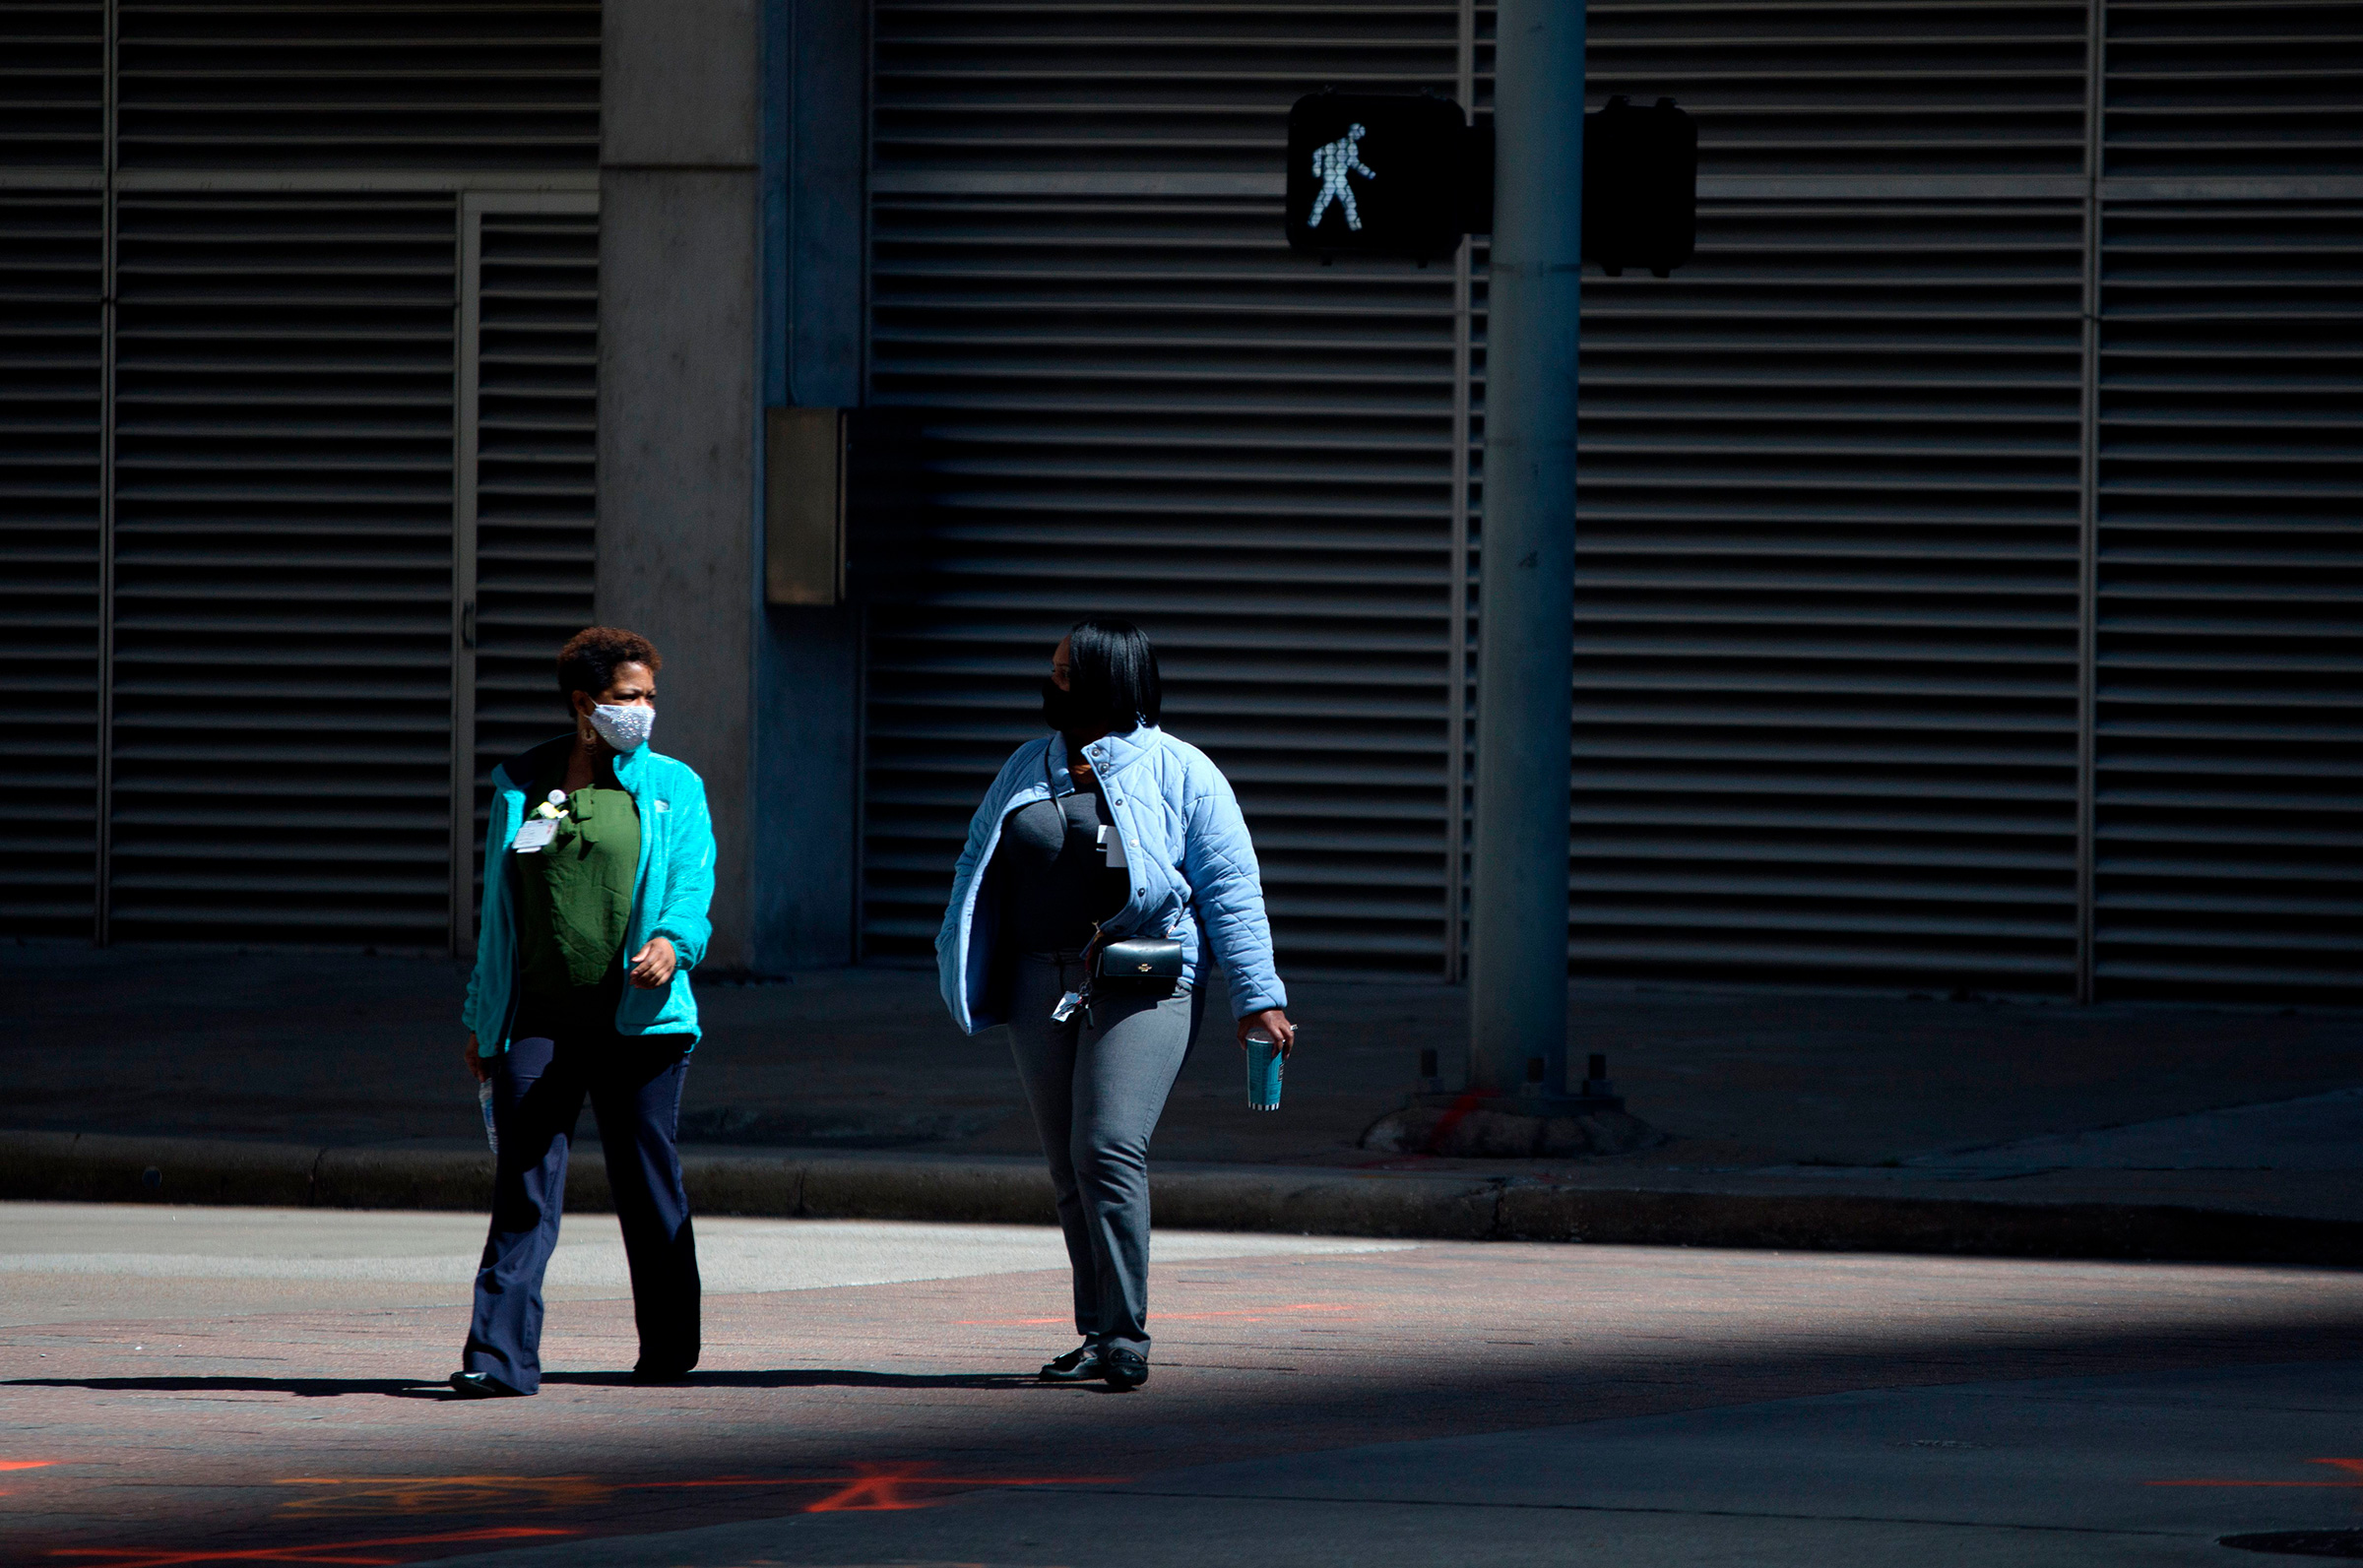 Pedestrians wear masks while walking across a street in downtown Houston, Texas on March 3, 2021.